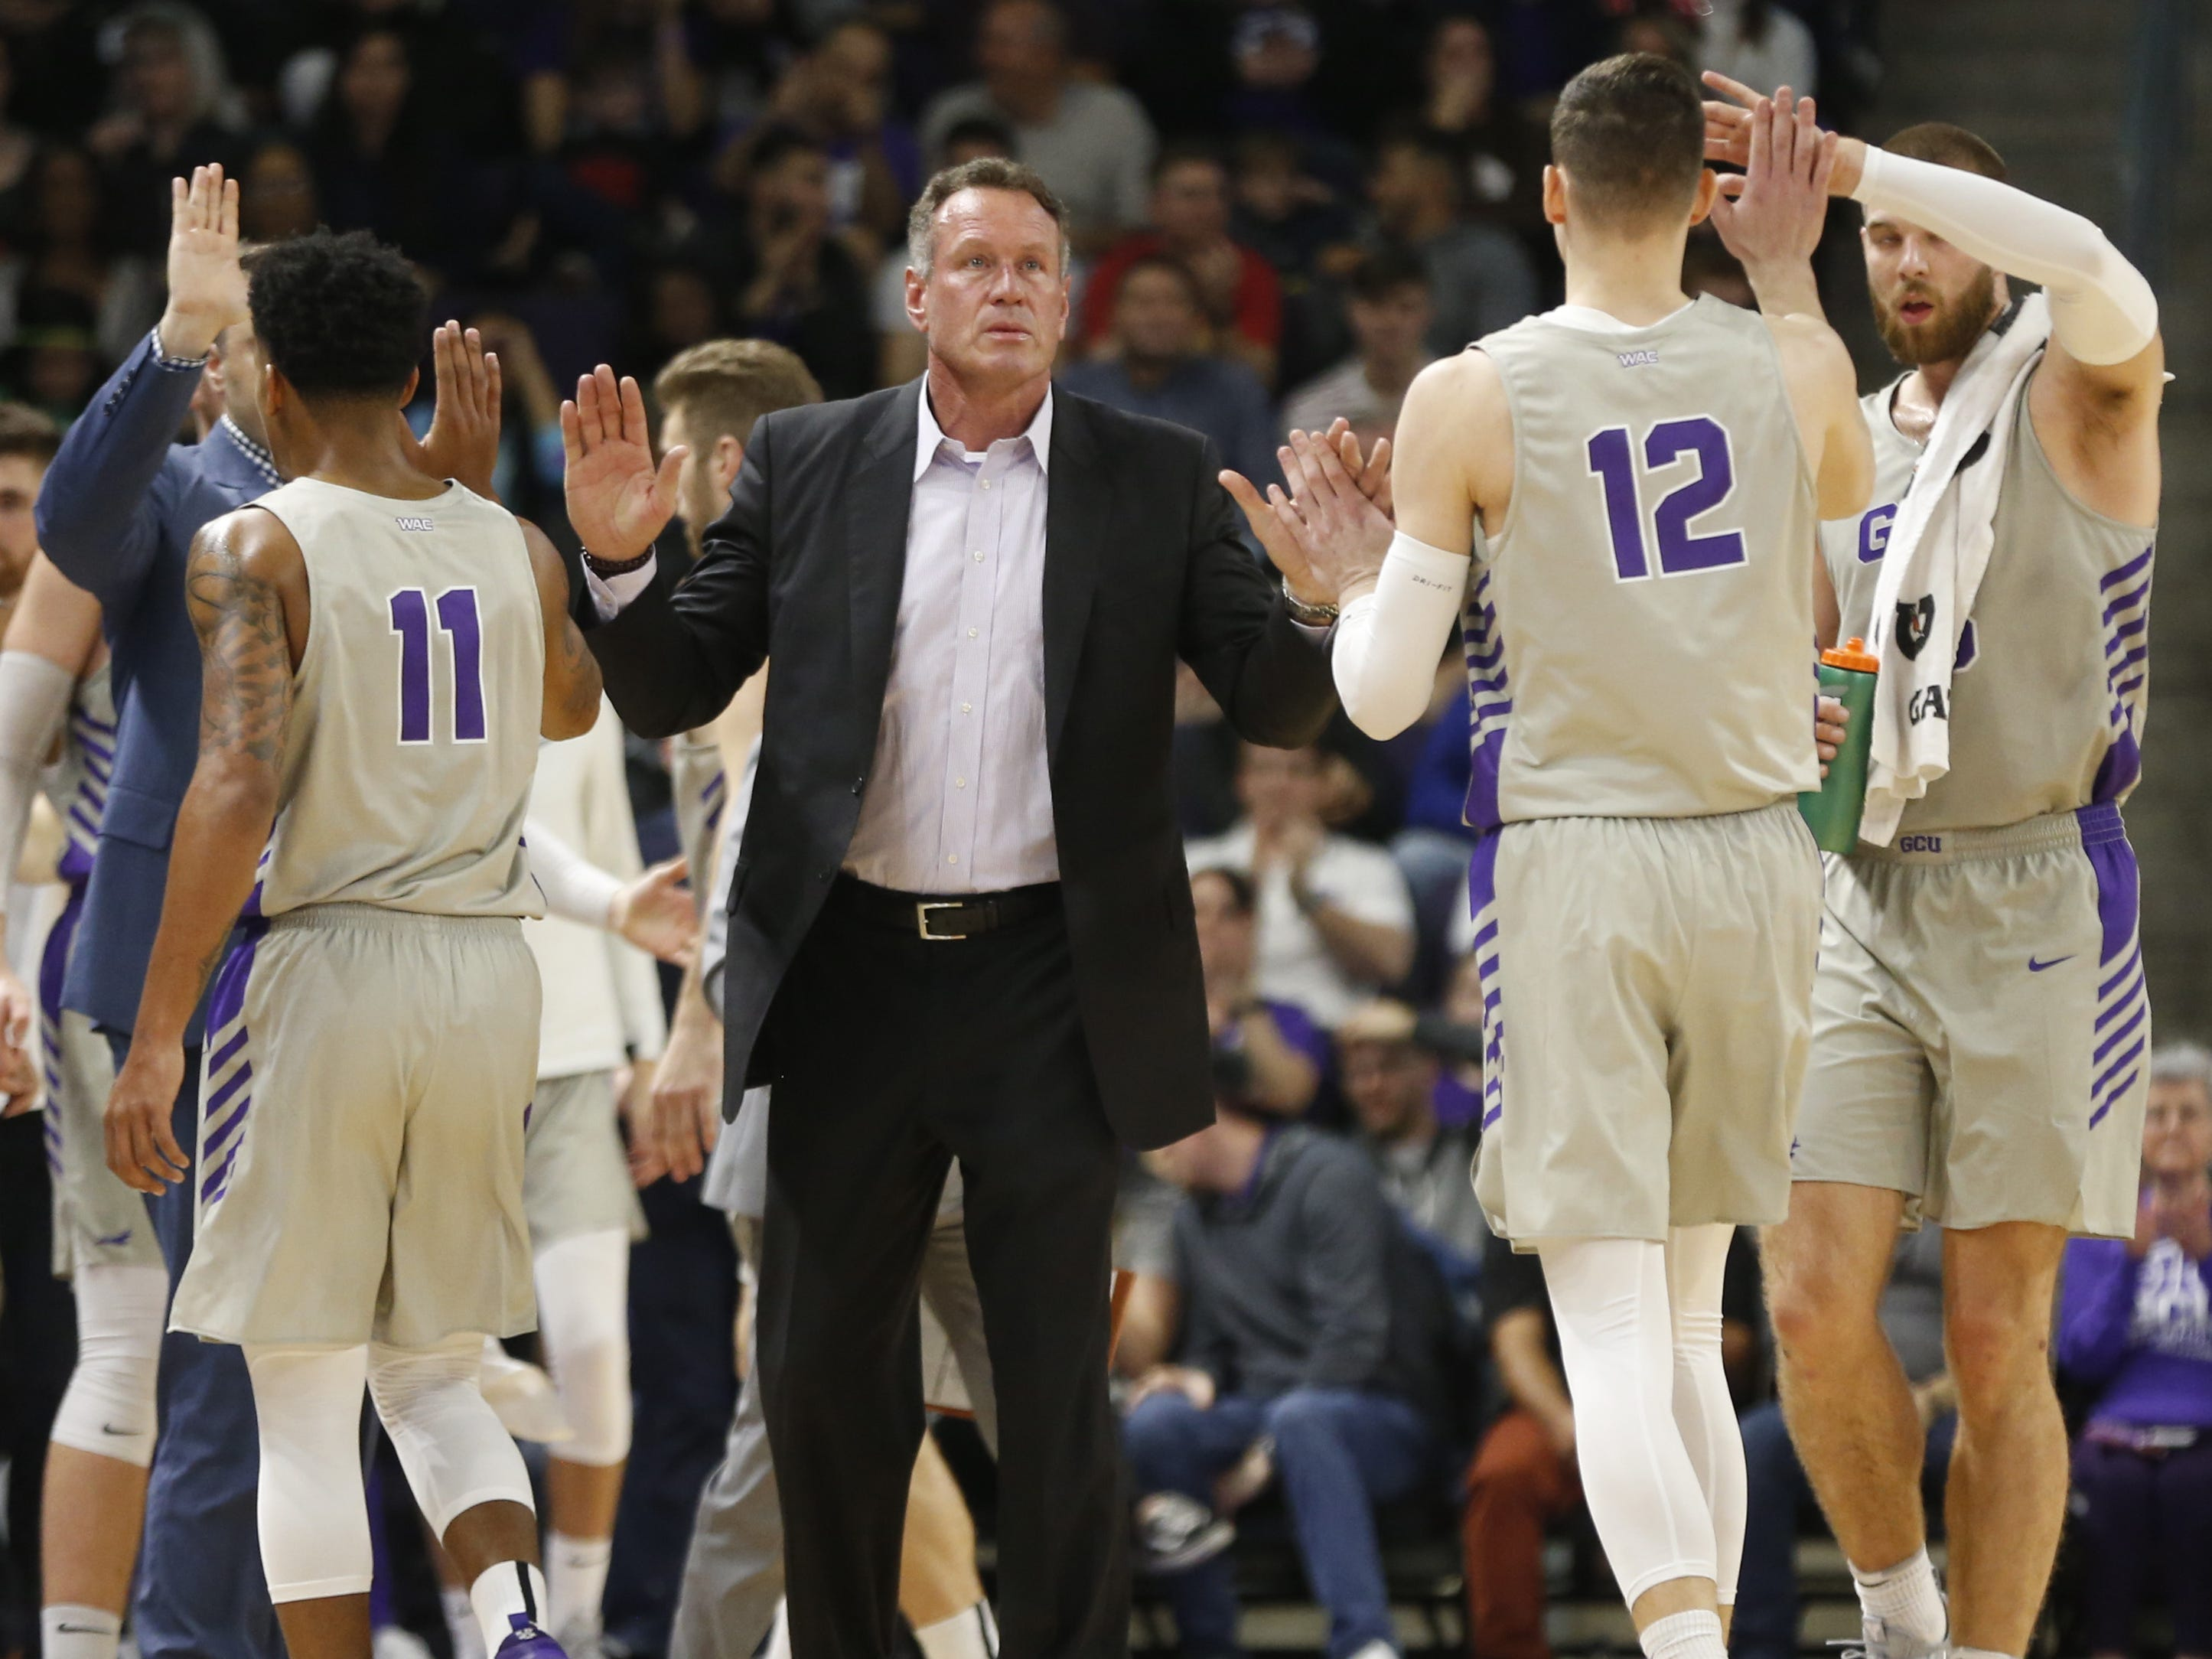 GCU's head coach Dan Majerle high-fives his team as they return to a timeout against Chicago State University during the first half at Grand Canyon University Arena in Phoenix, Ariz. on January 17, 2019.